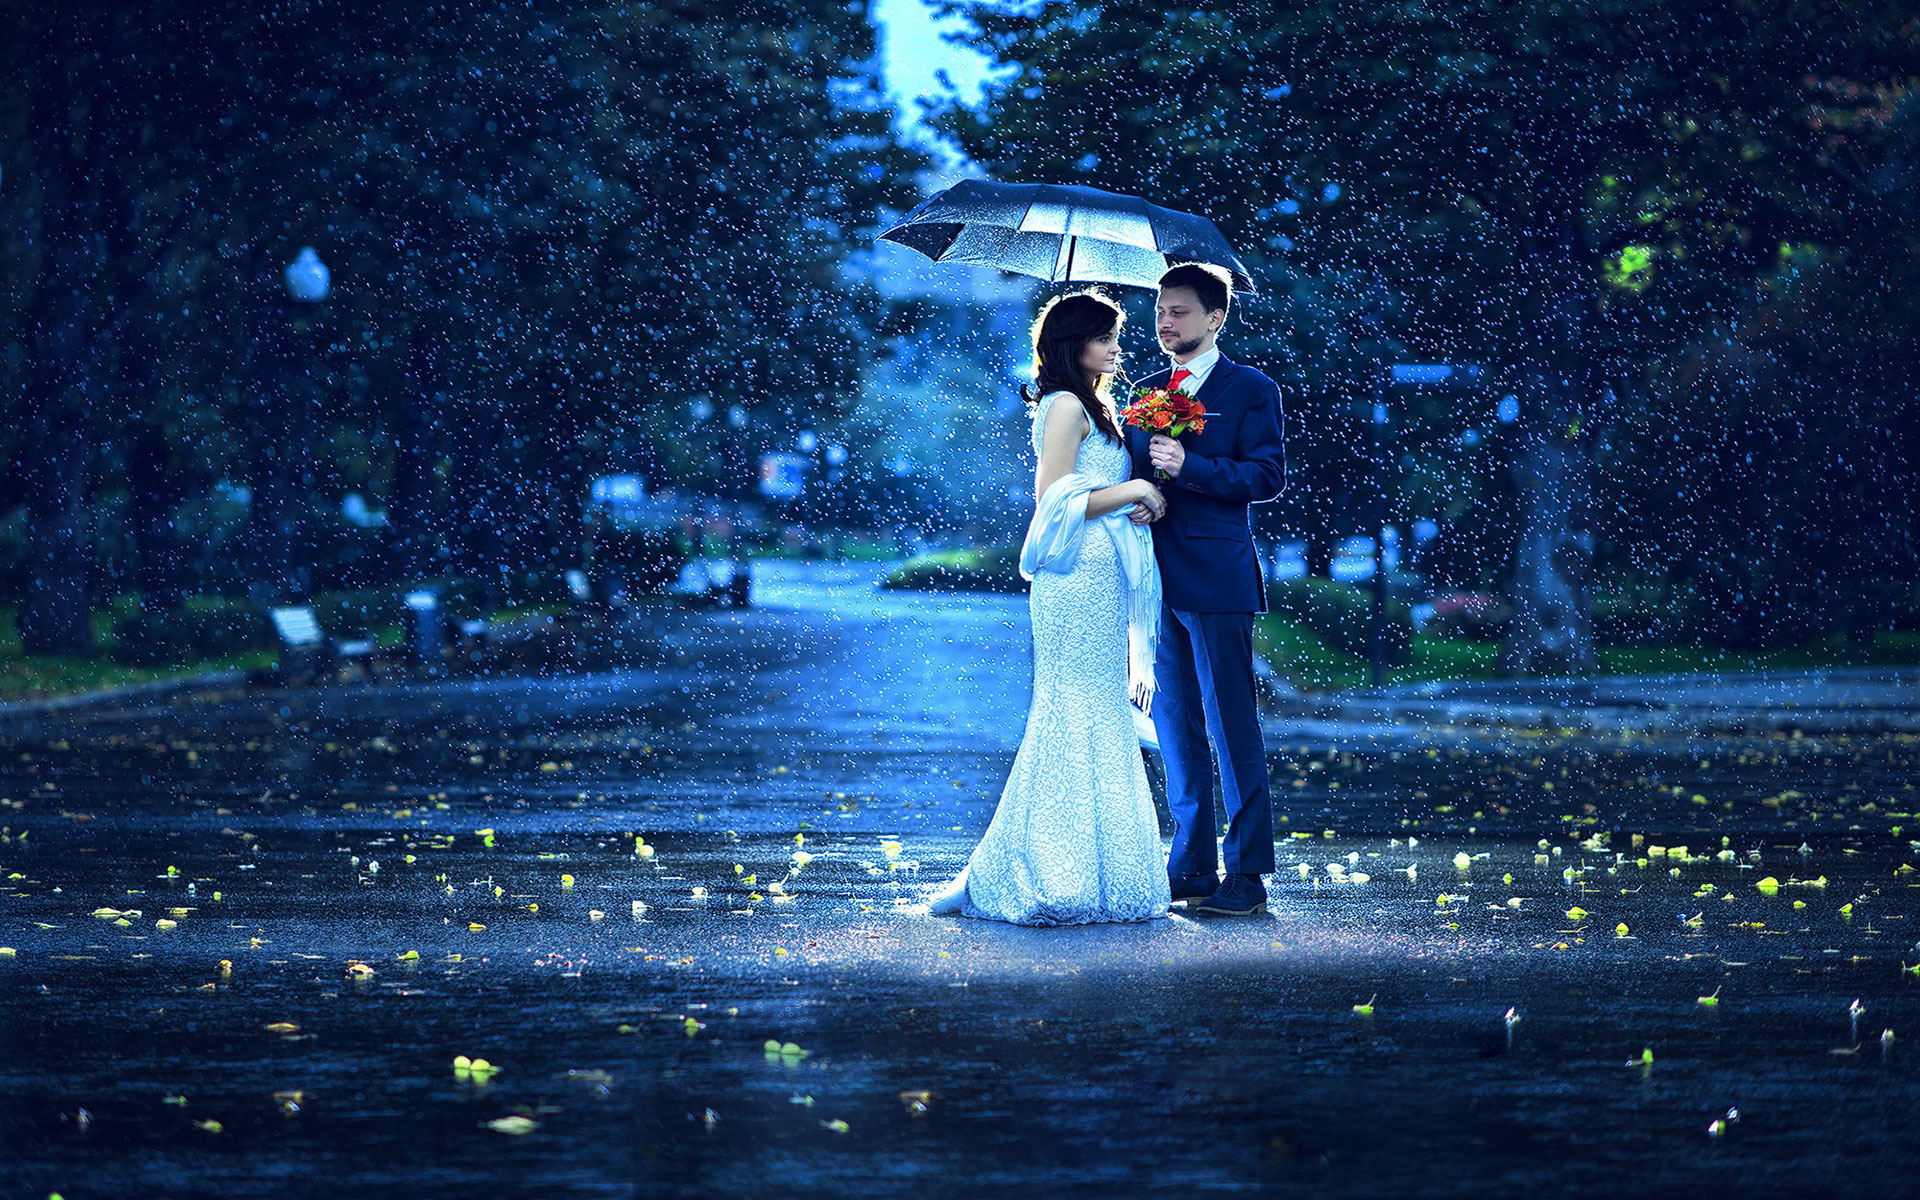 20 Love Couples Romance In The Rain Wallpapers